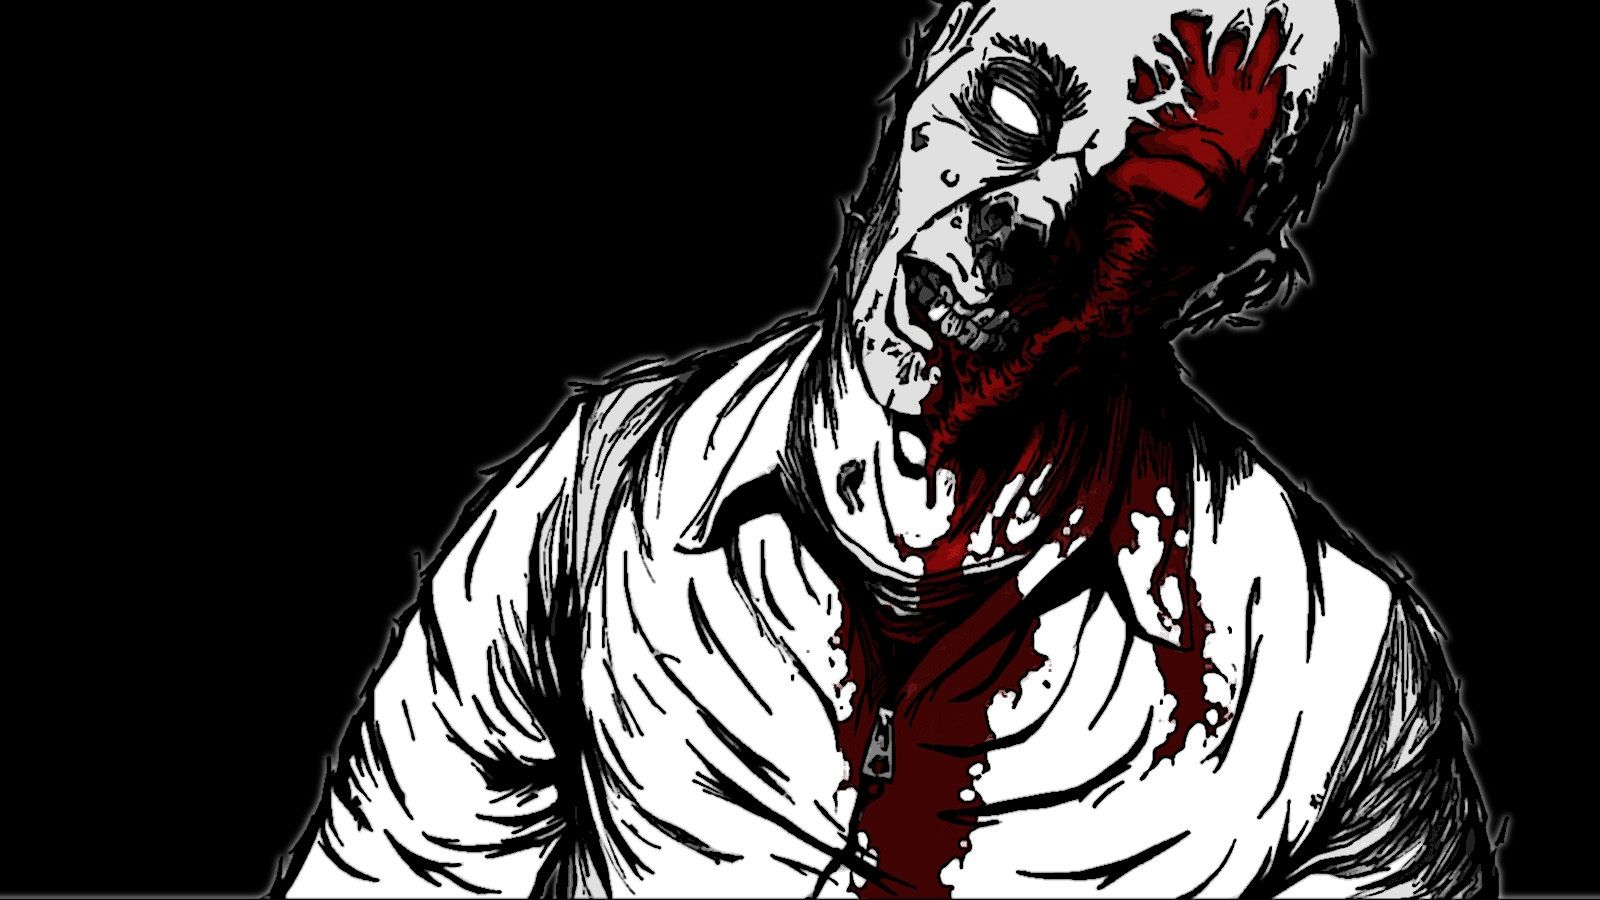 Hd wallpaper zombie - Zombie Hd Wallpapers Backgrounds Wallpaper 1600 900 Zombie Wallpaper 47 Wallpapers Adorable